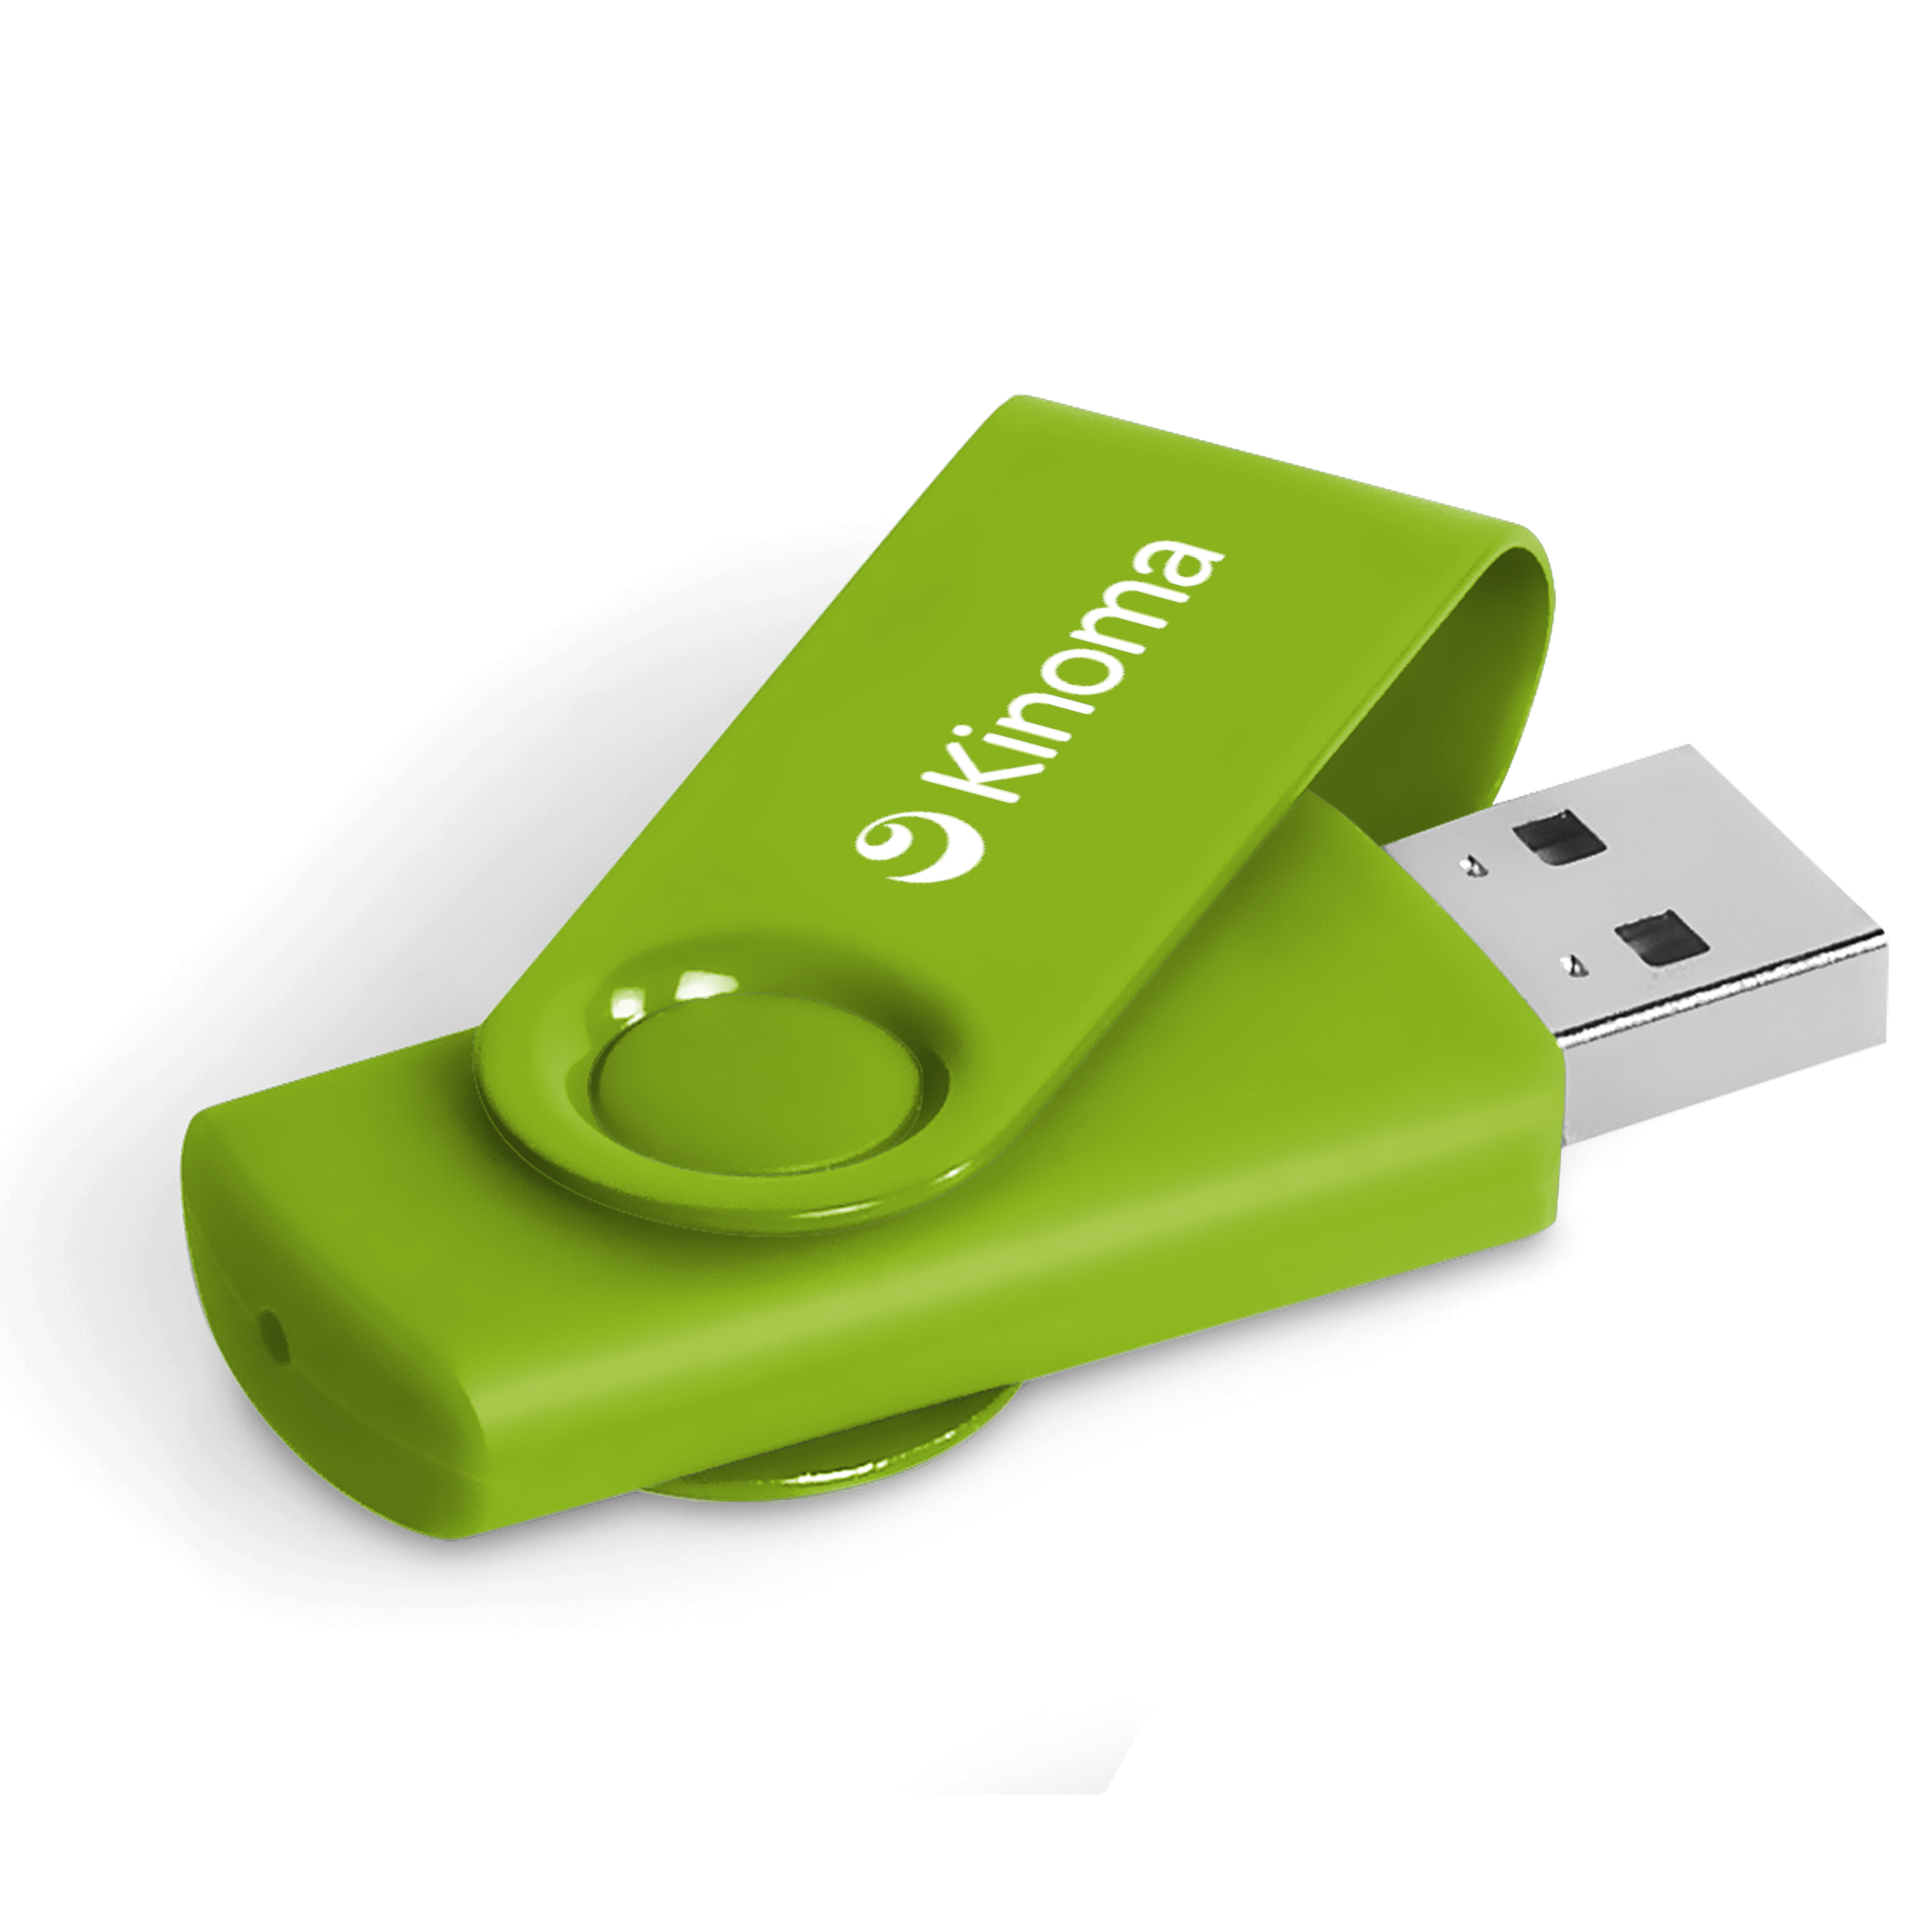 Axis Memory Stick - 8GB